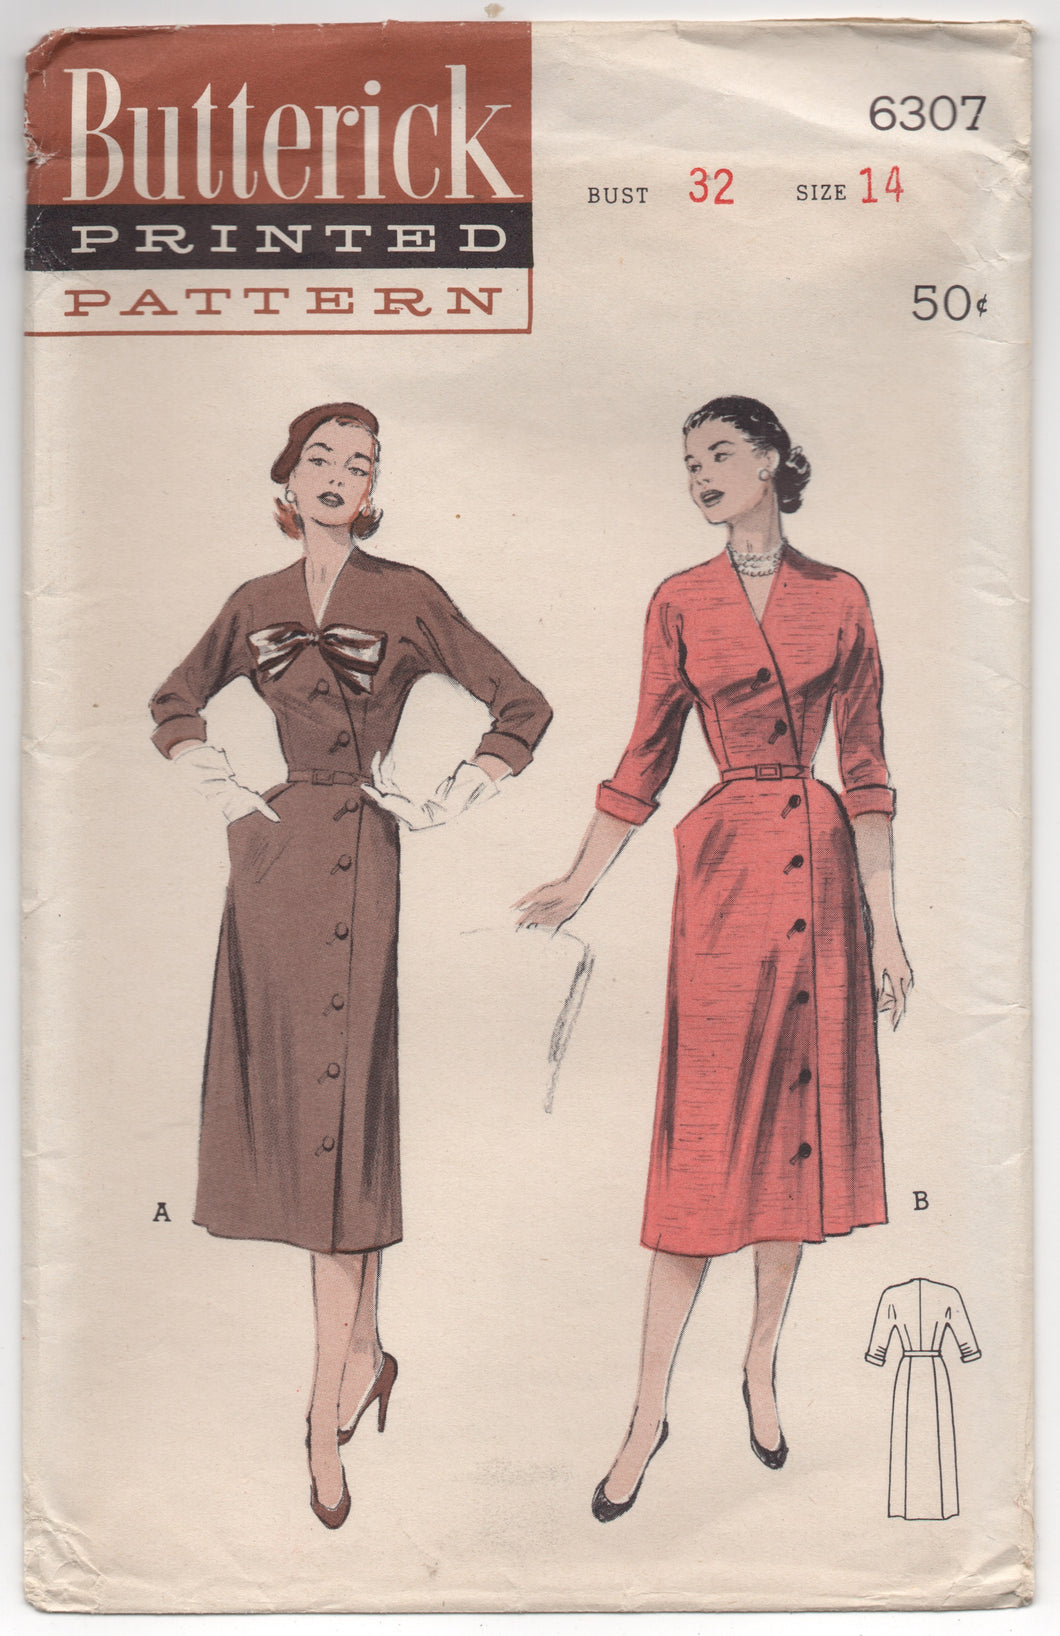 UC/FF - 1950's Butterick Cross-over Front Dress with Bow detail and pockets - Bust 32